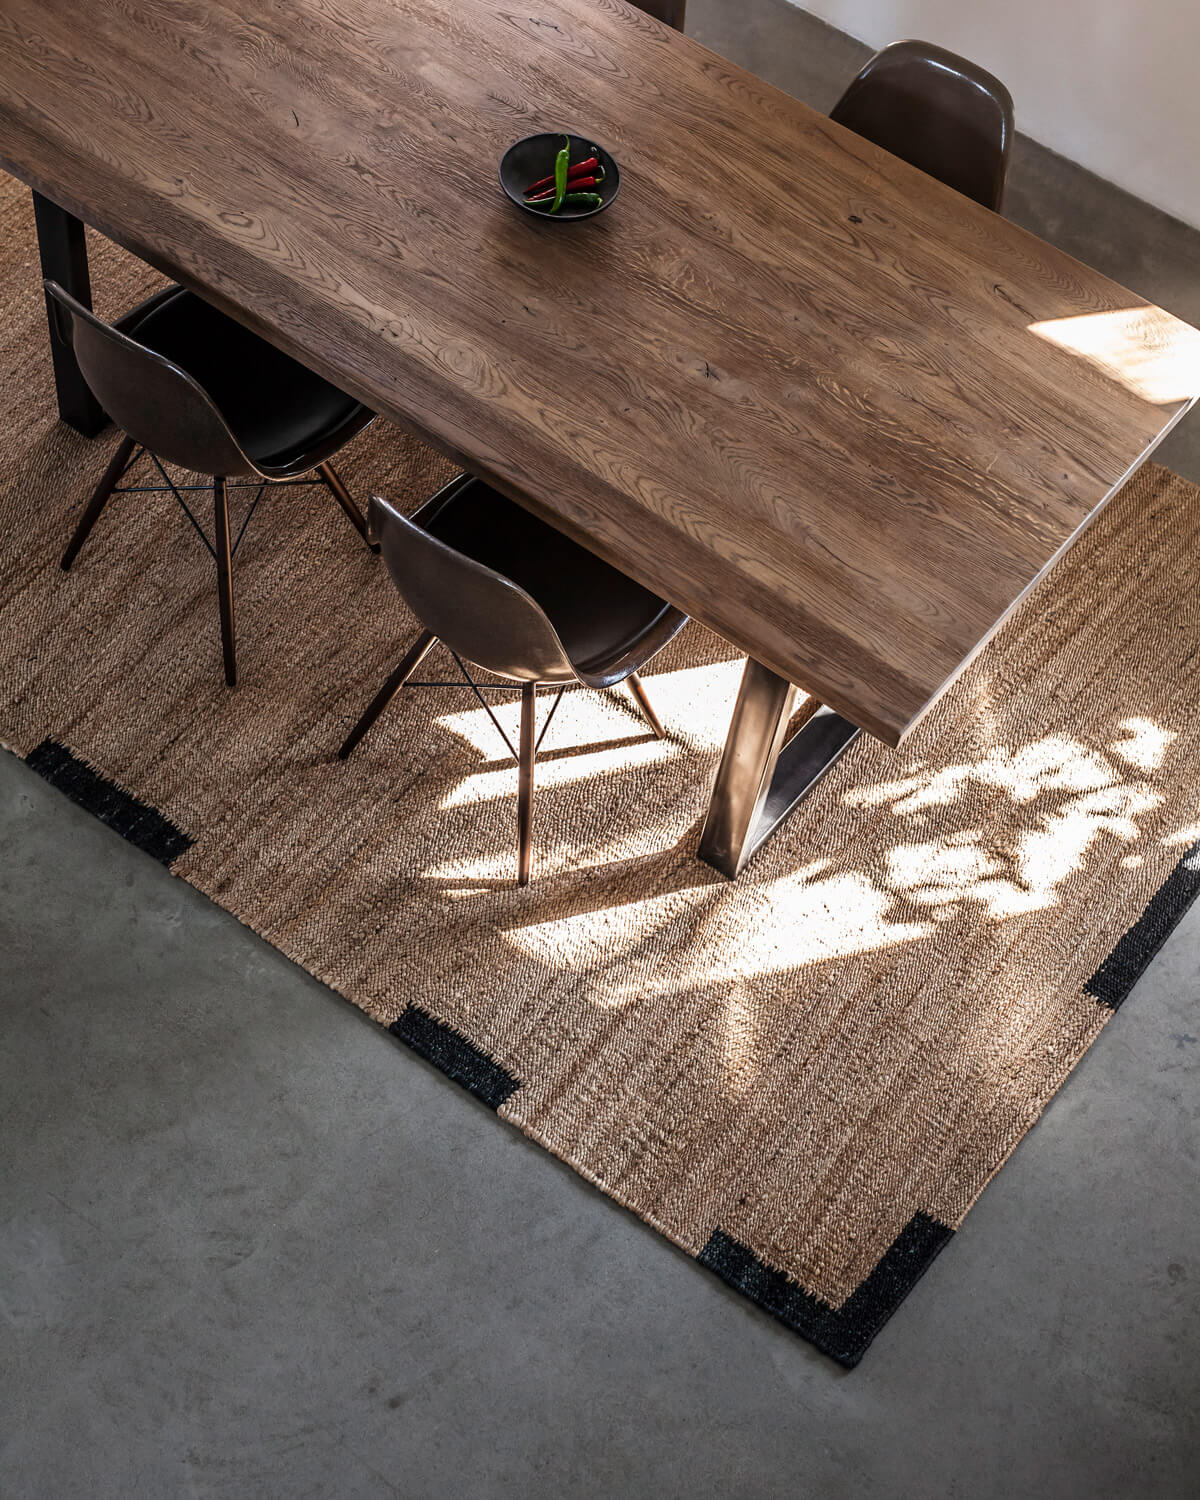 Birds eye view of Jute Edge in Black styled with a wooden dinner table and matching chairs.